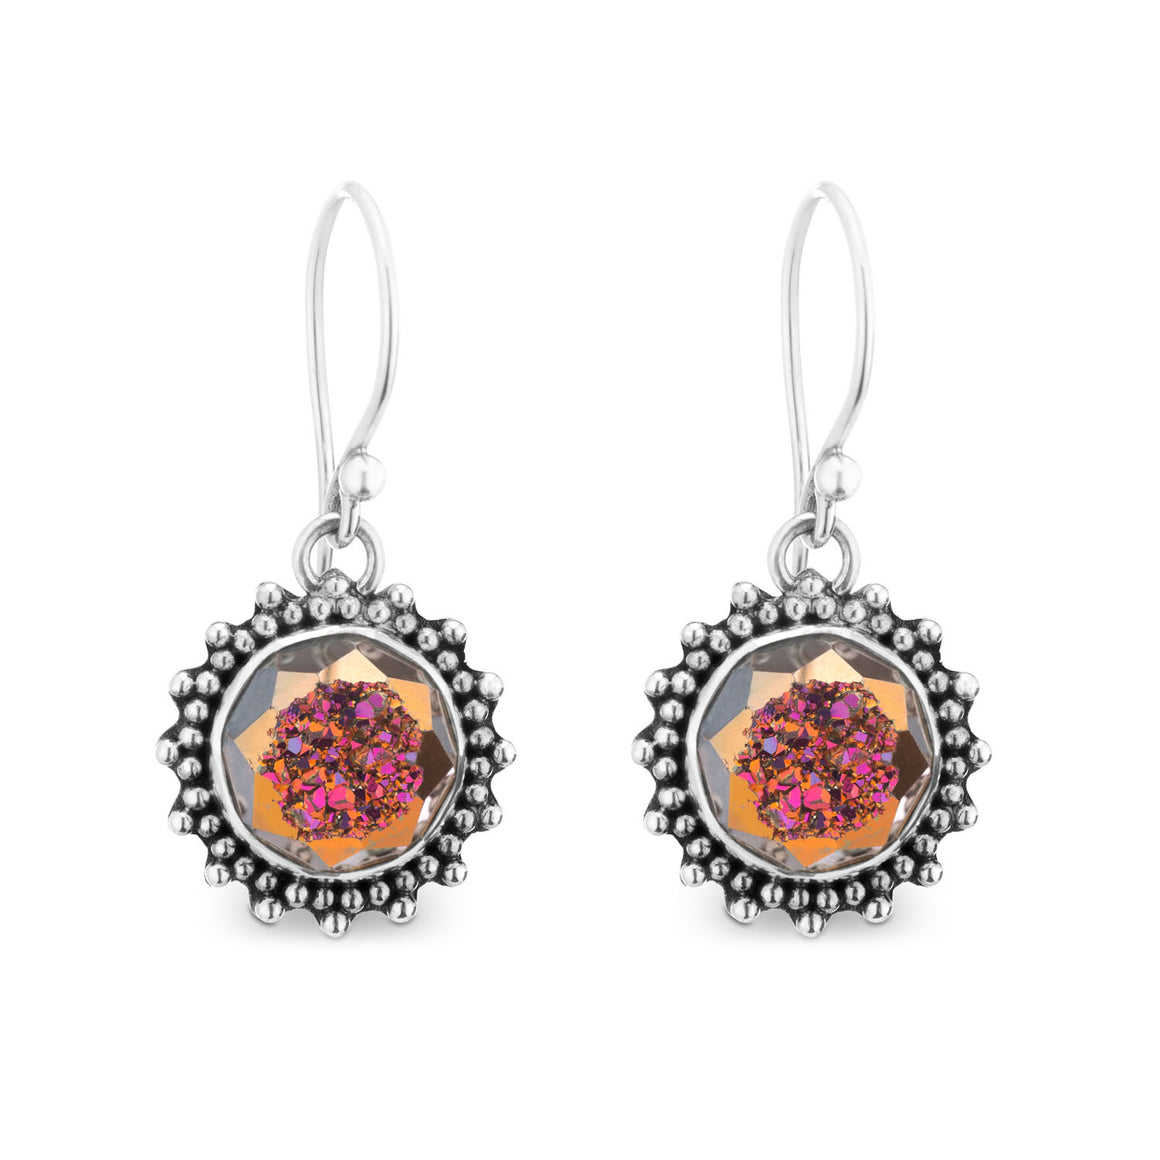 Fire Sign Earrings by Lori Bonn (110309DWTR)